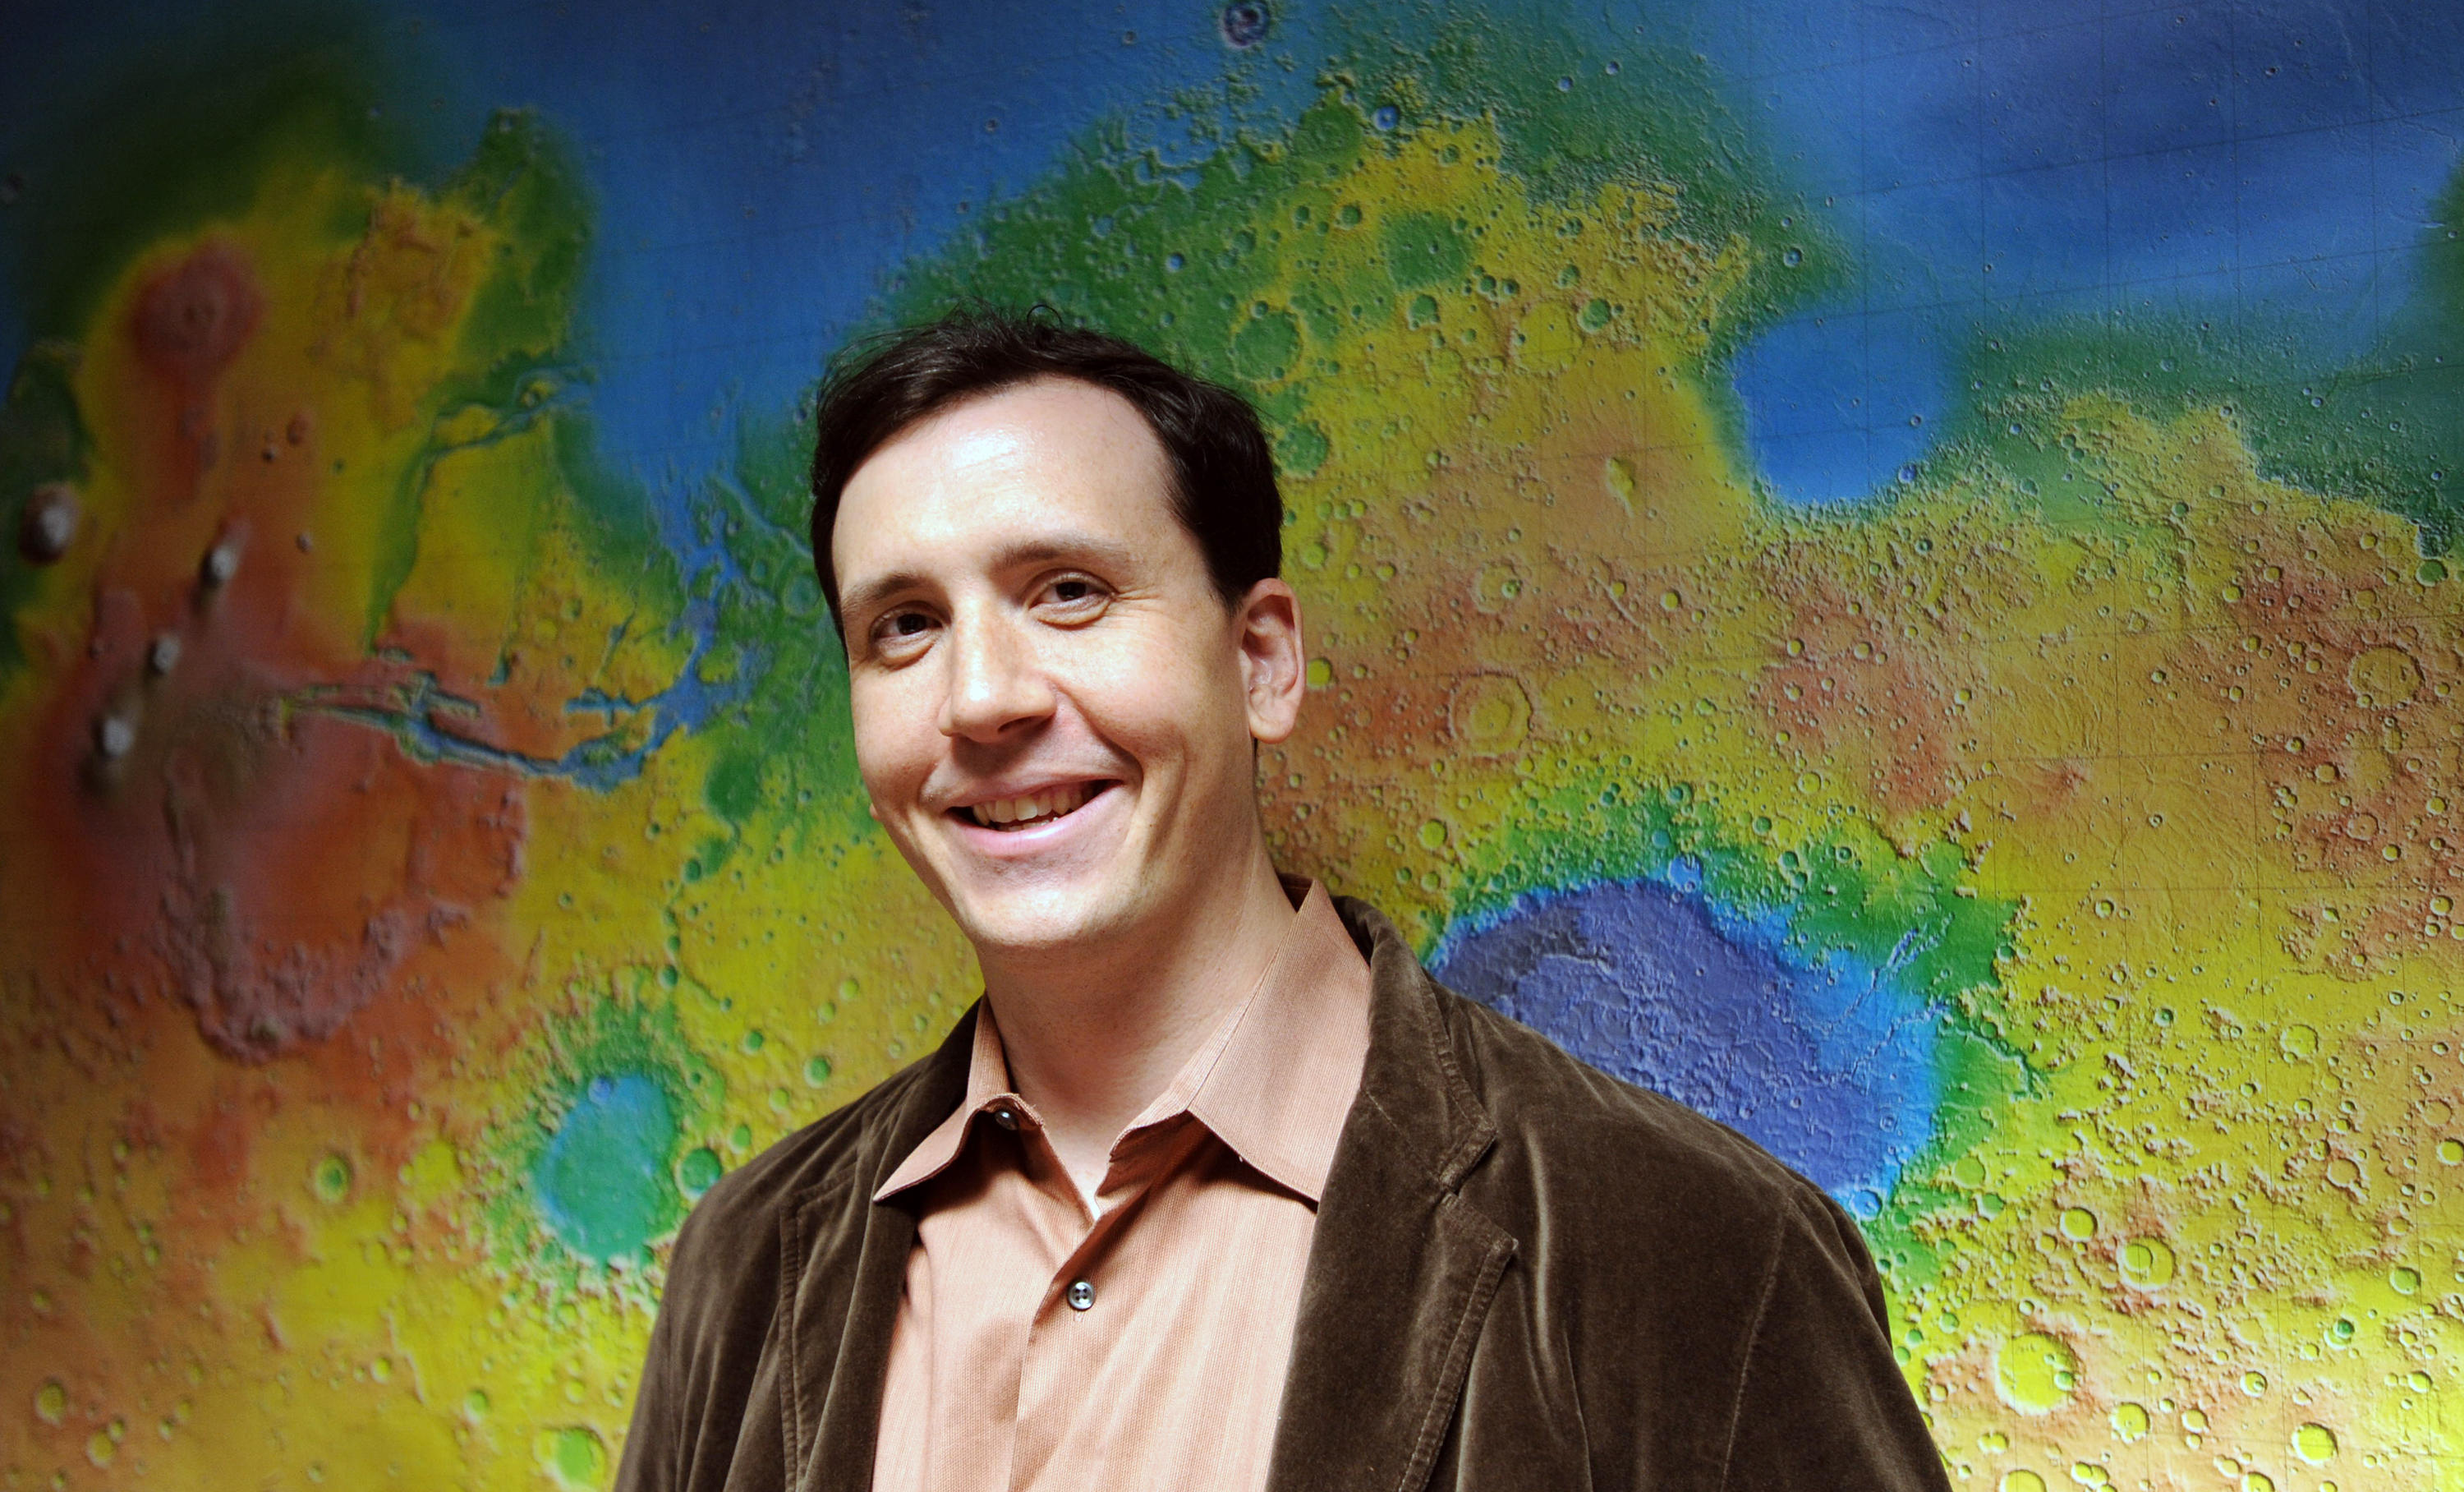 Shawn Domagal-Goldman honored with a NASA Early Career Achievement Medal. Image source: NASA Image credit: None